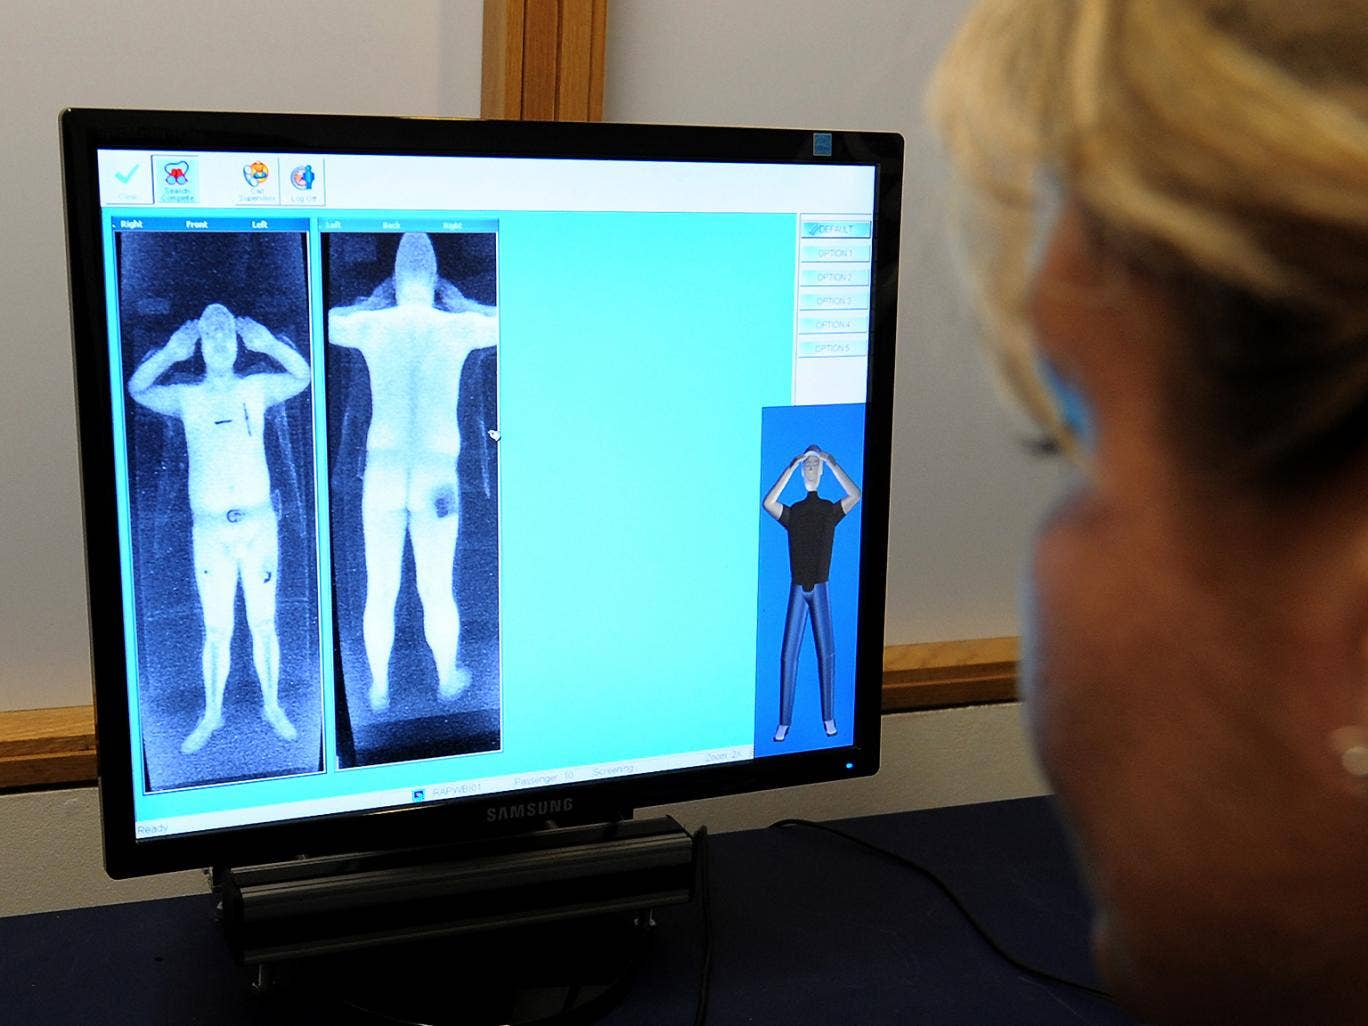 January 2010: A security officer views images from the body scanner at Manchester Airport